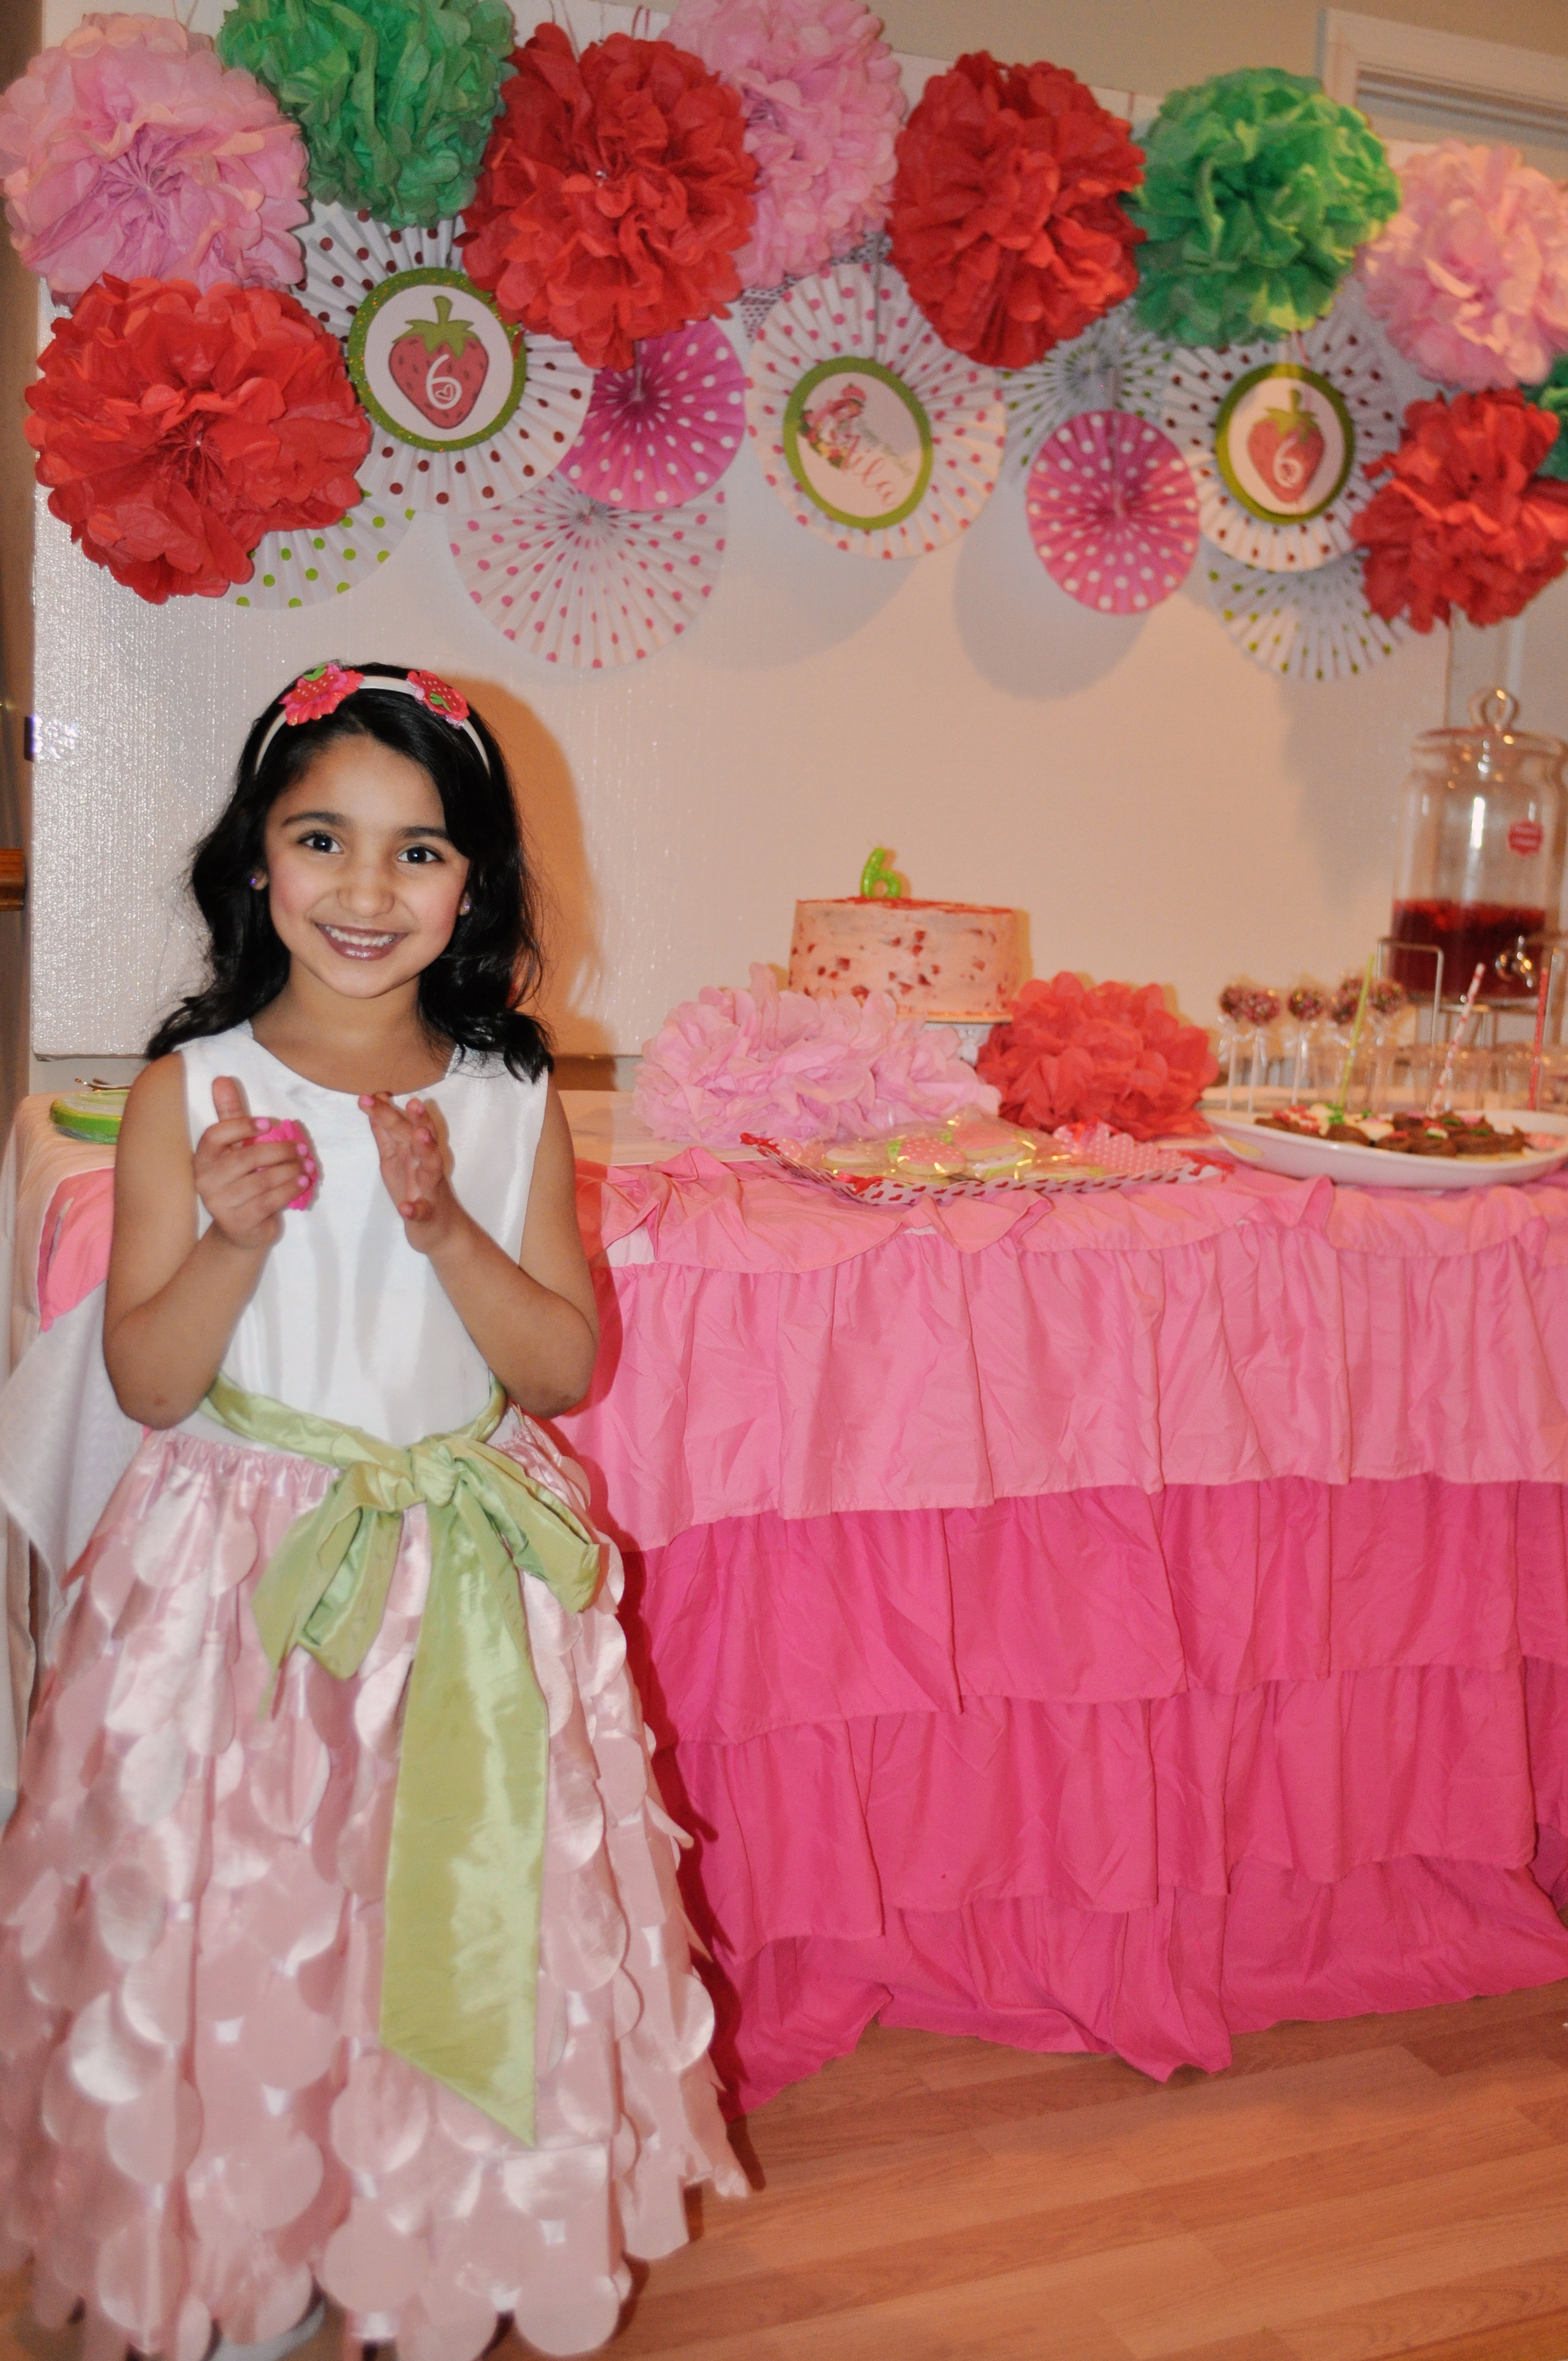 Strawberry Shortcake Party by Frosted Events frostedevents.com Girls Birthday Party Ideas and Inspiration